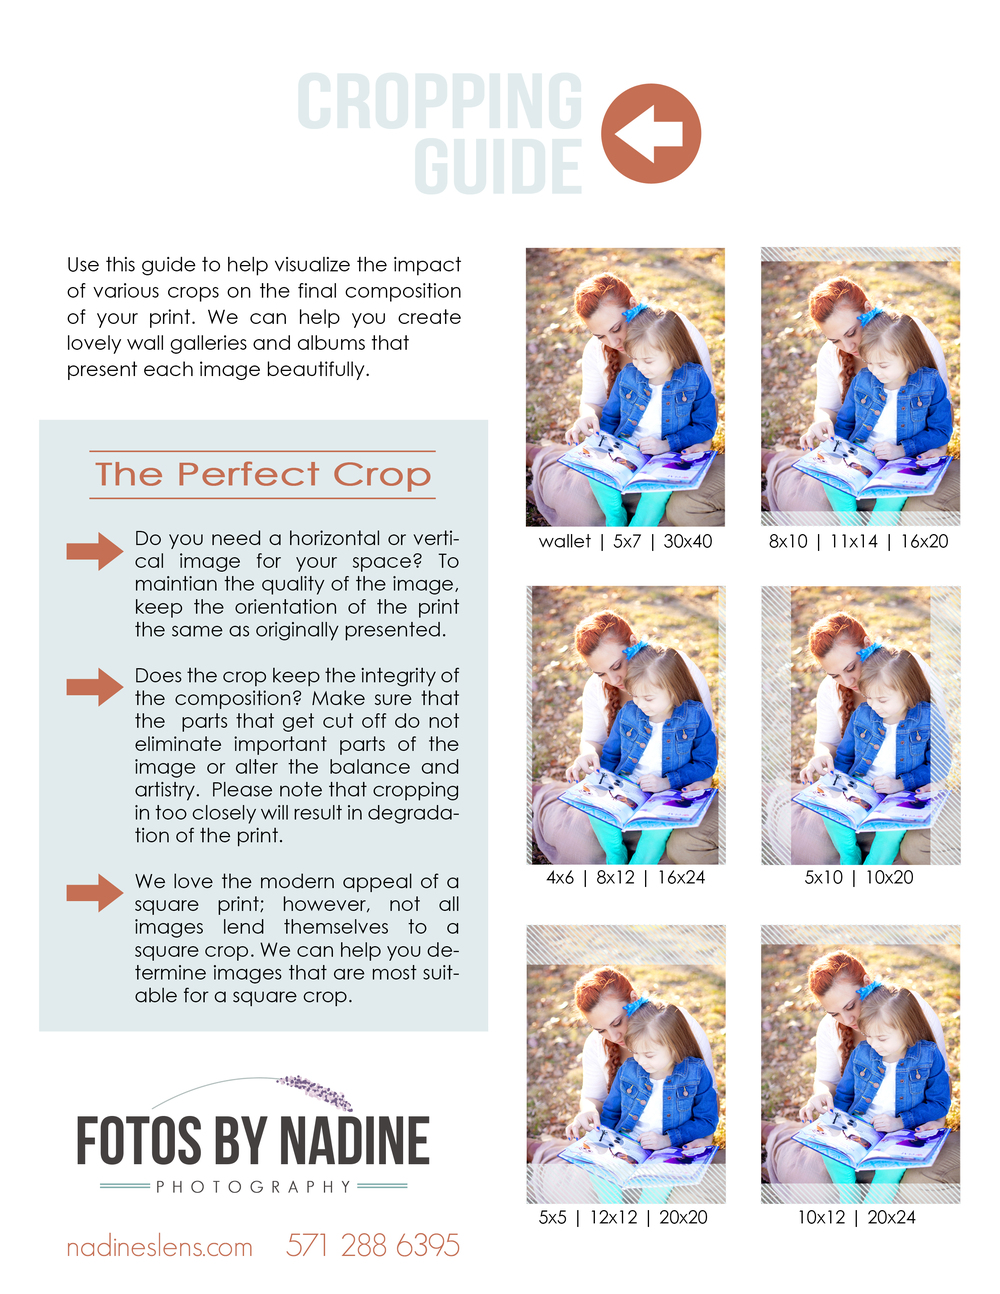 crop ratio explained - shown in comparison to a 5x7 image.